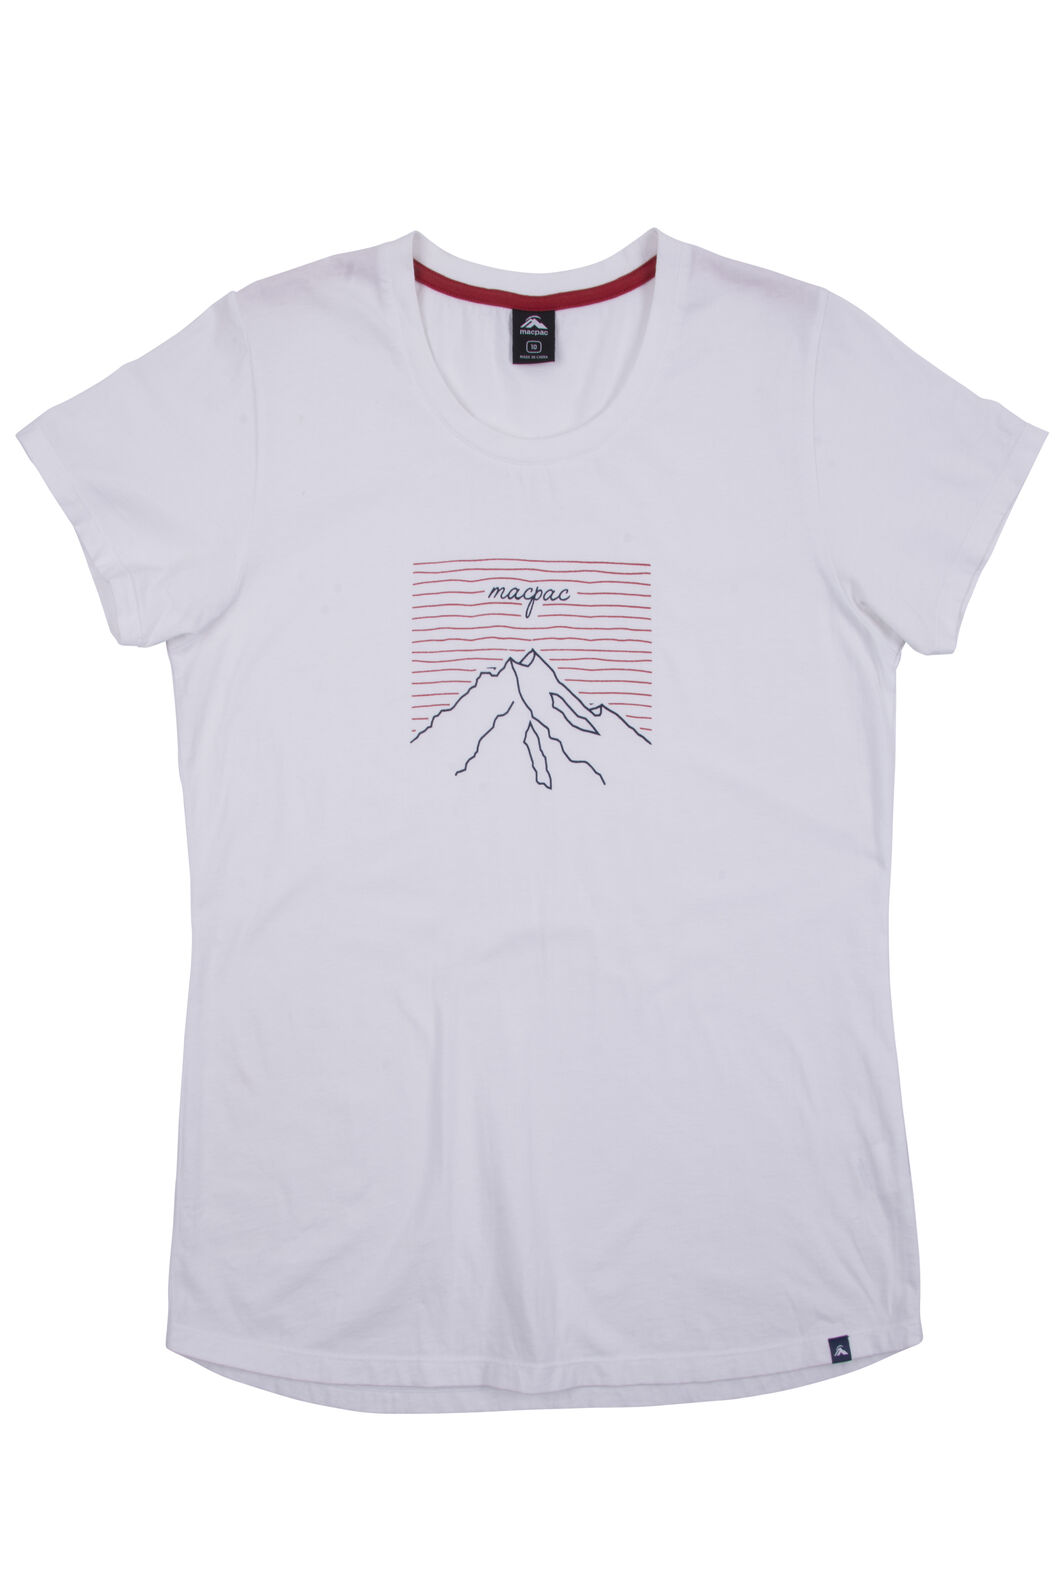 Summit Organic Cotton Tee - Women's, White, hi-res